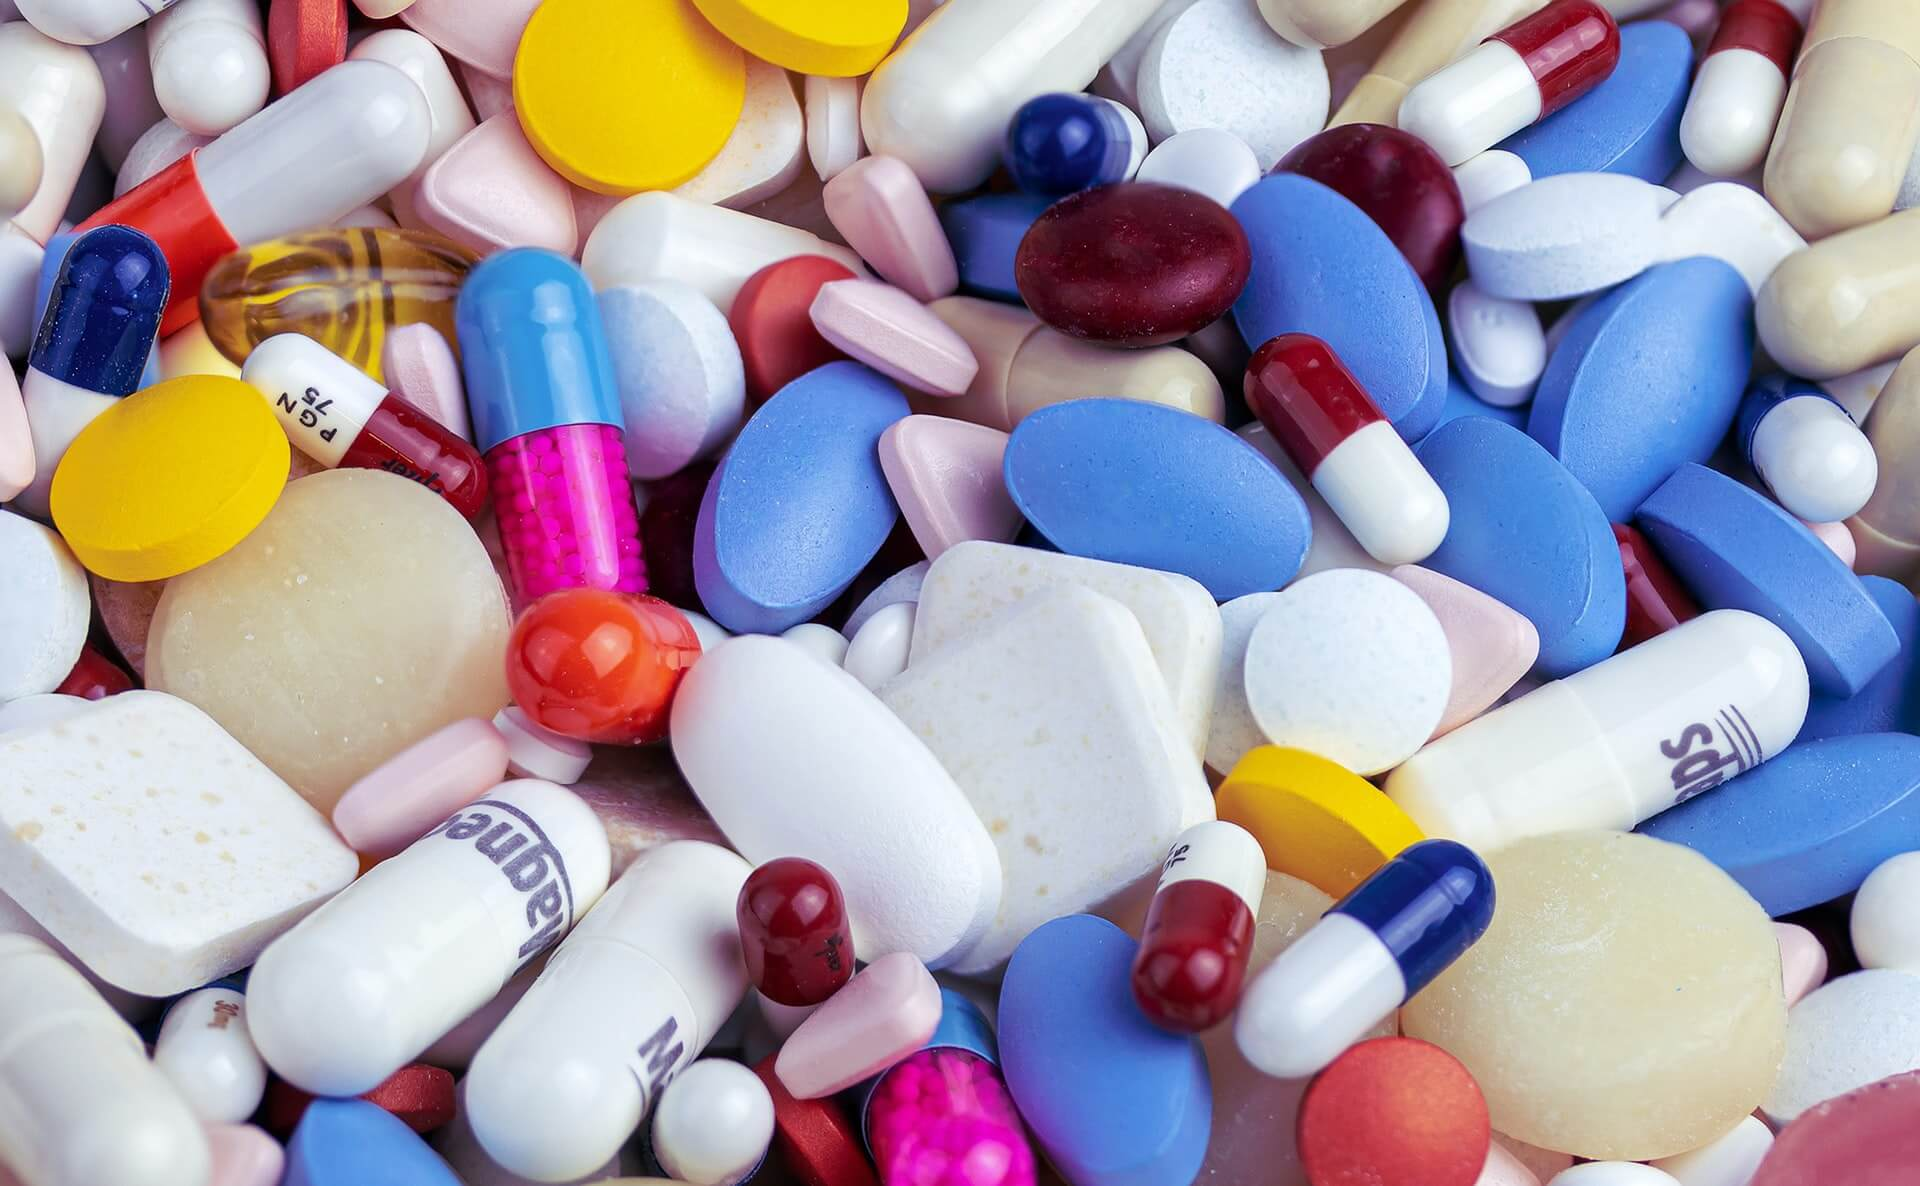 SPECIALTY DRUG SPEND IS UNSUSTAINABLE